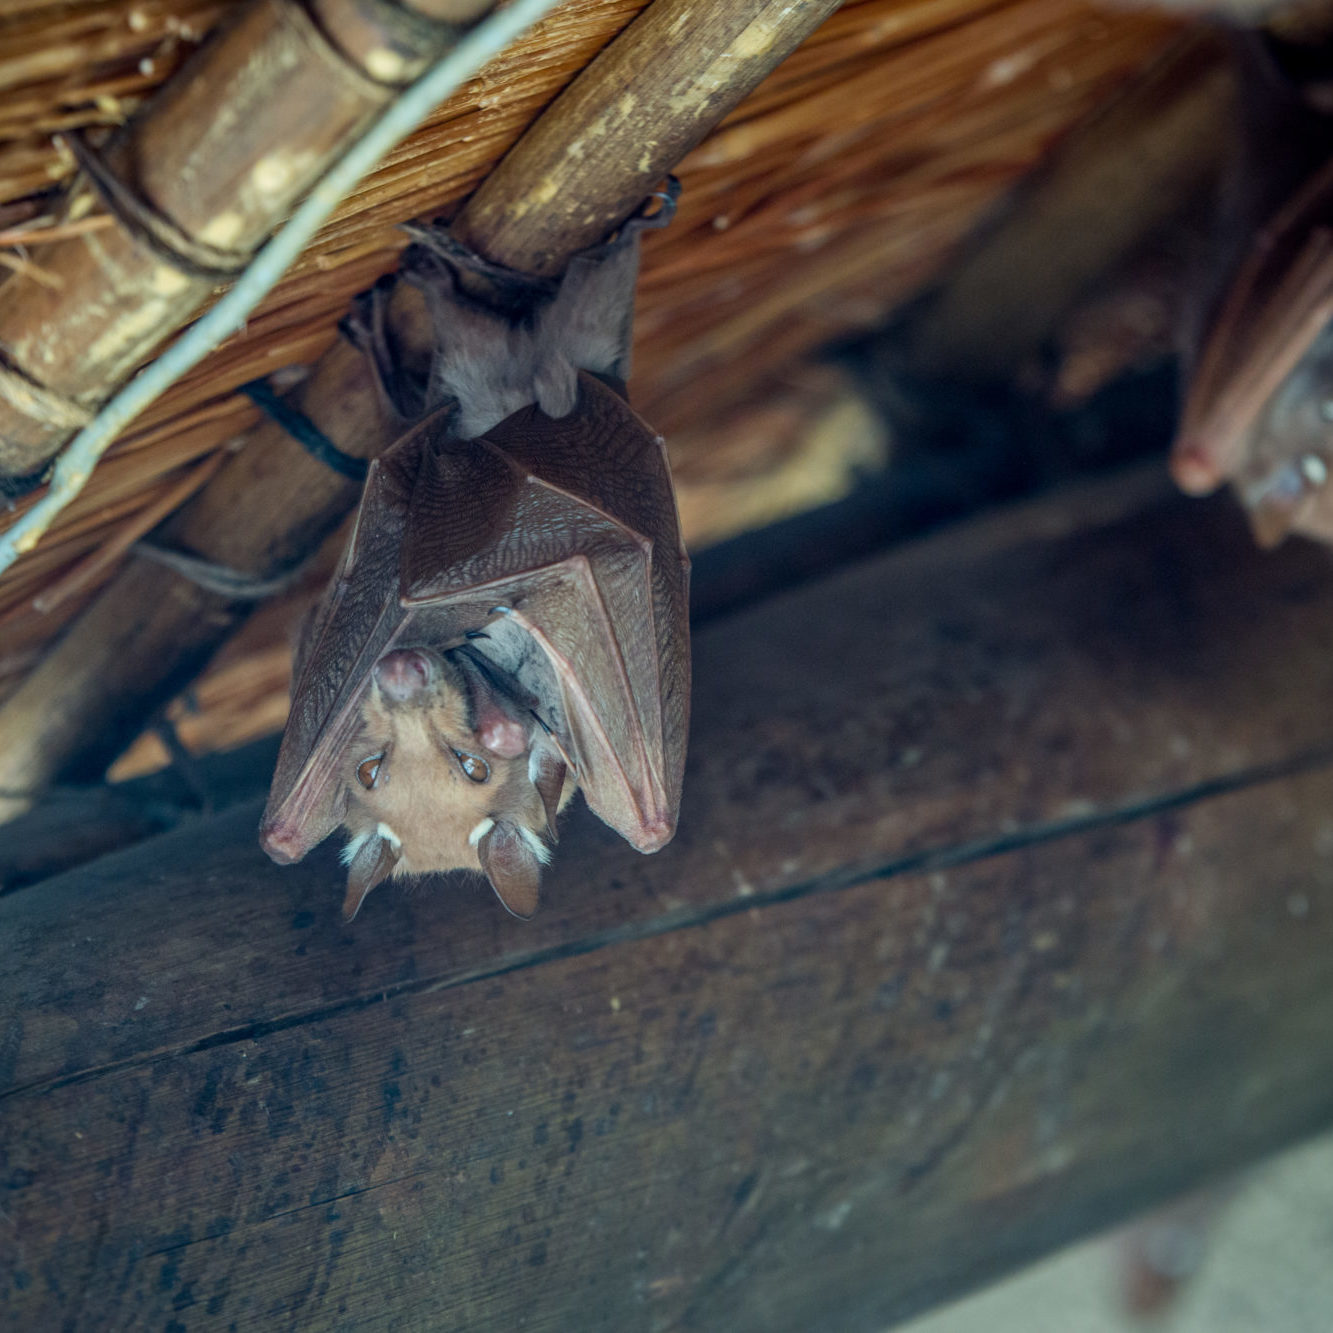 Epaulet bat hanging upside down from a roof in the Kruger National Park, South Africa.